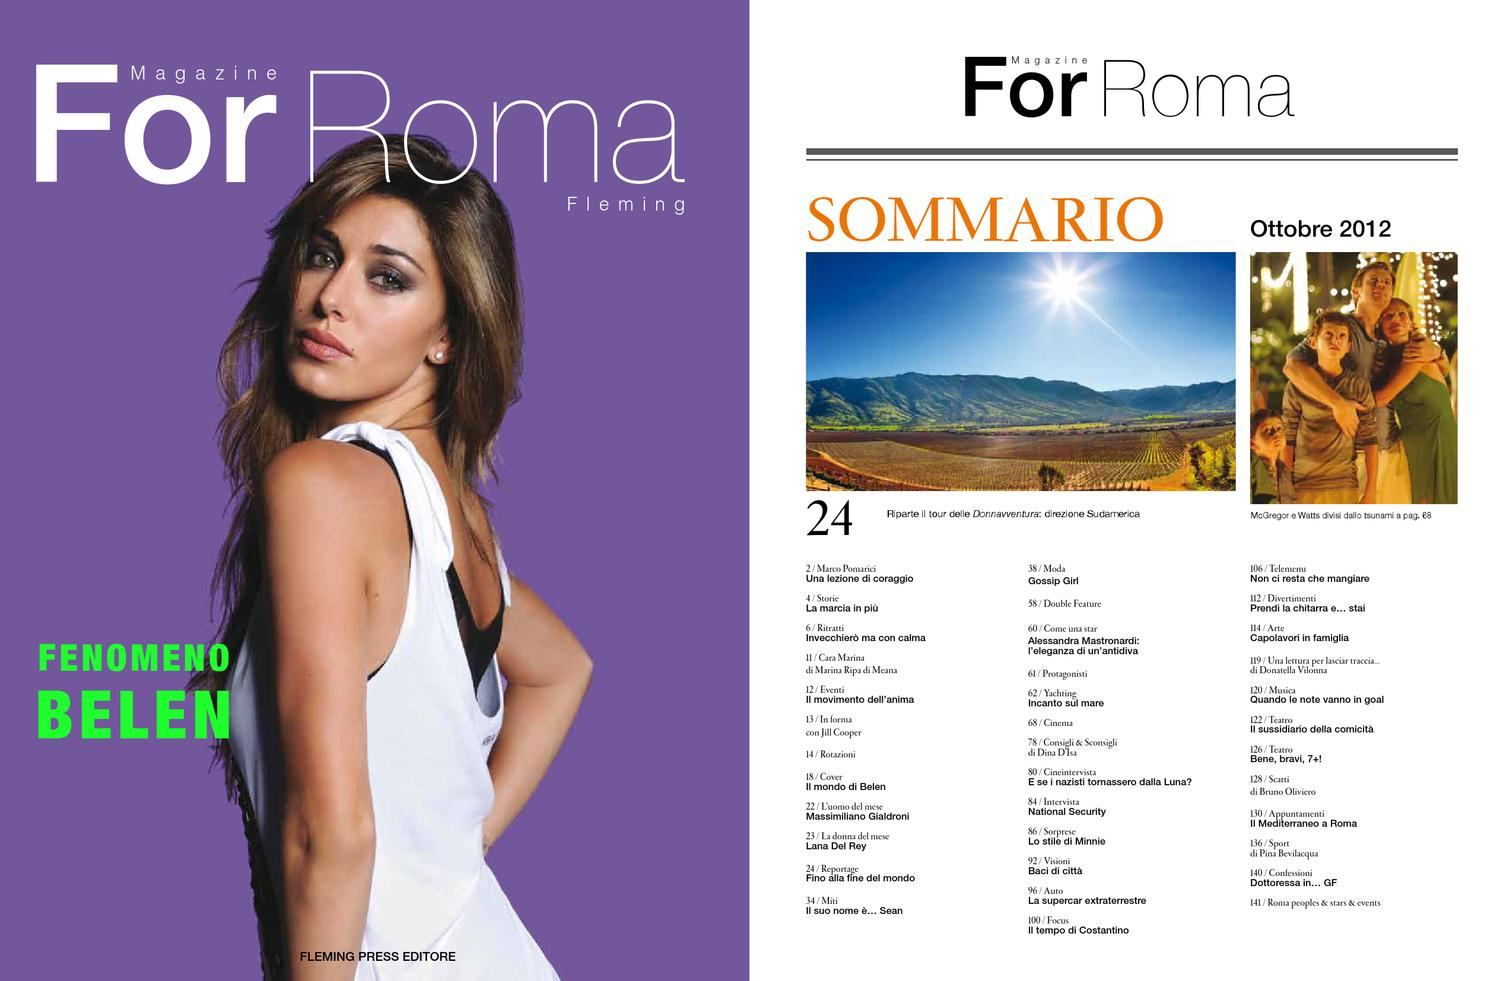 For Roma ottobre 2012 by 4mag magazine - issuu c2dce01d31a